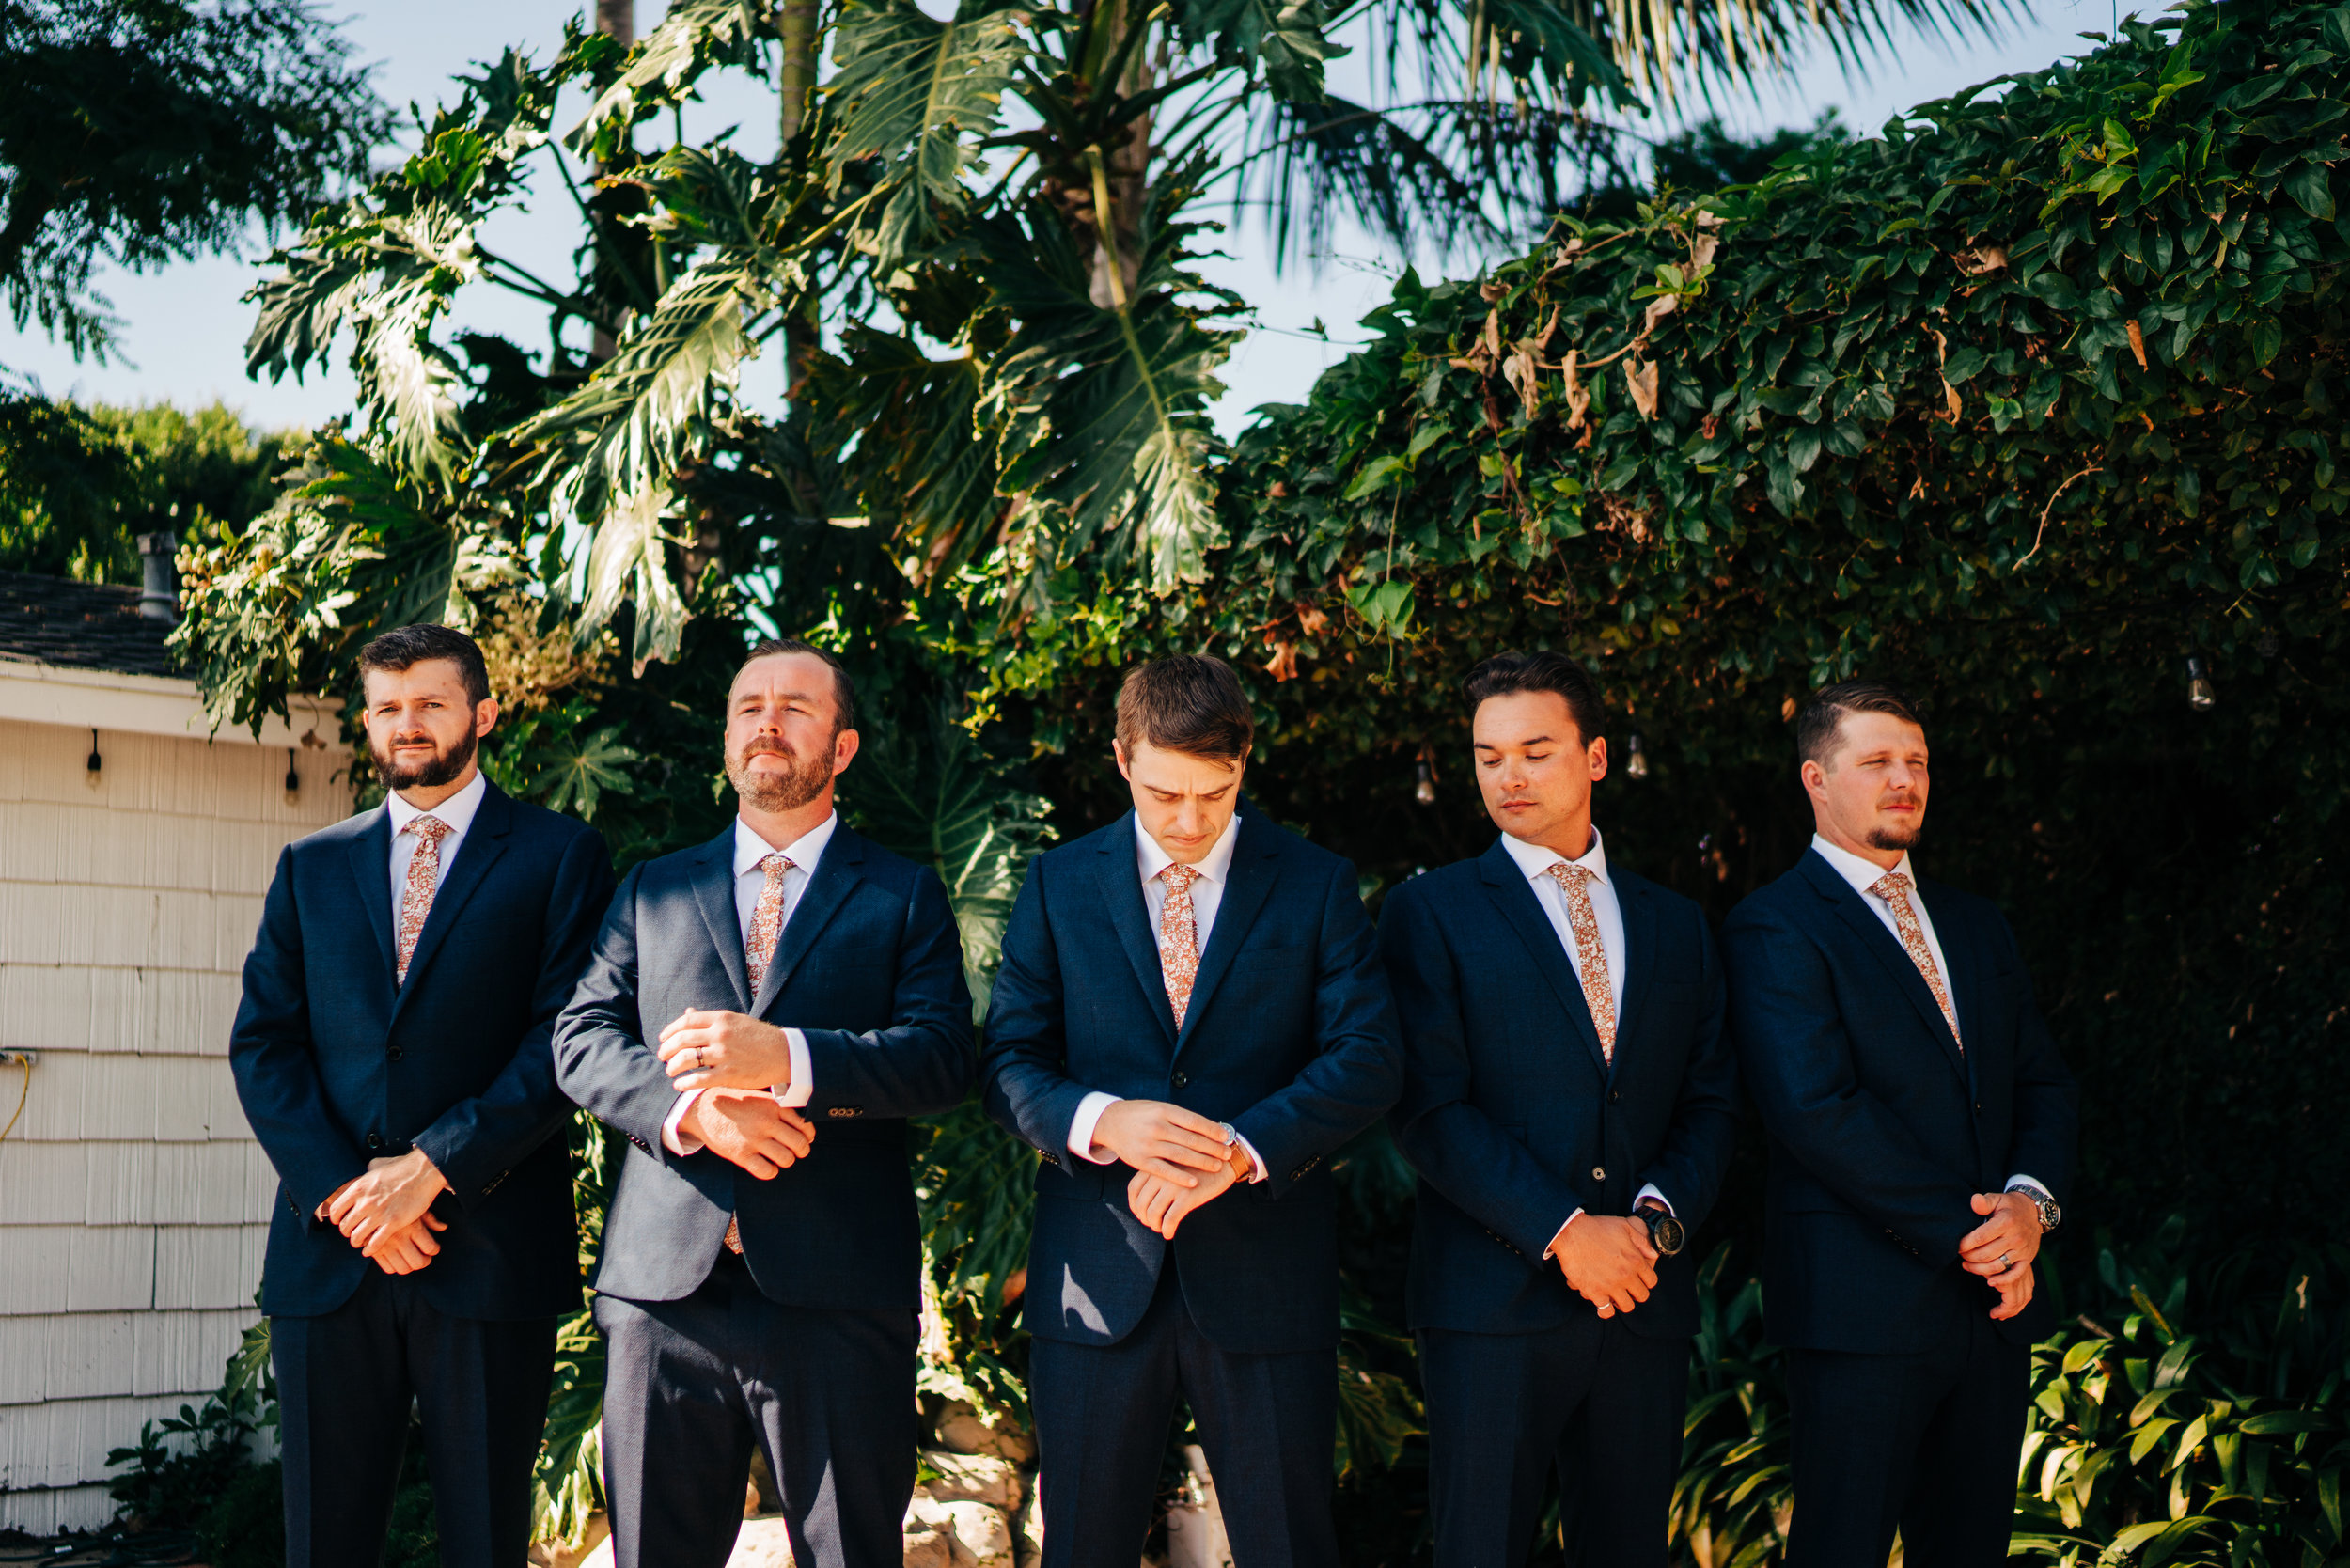 www.santabarbarawedding.com | Brandon Bibbins Photography | The Cottages at Polo Run | Groomsmen